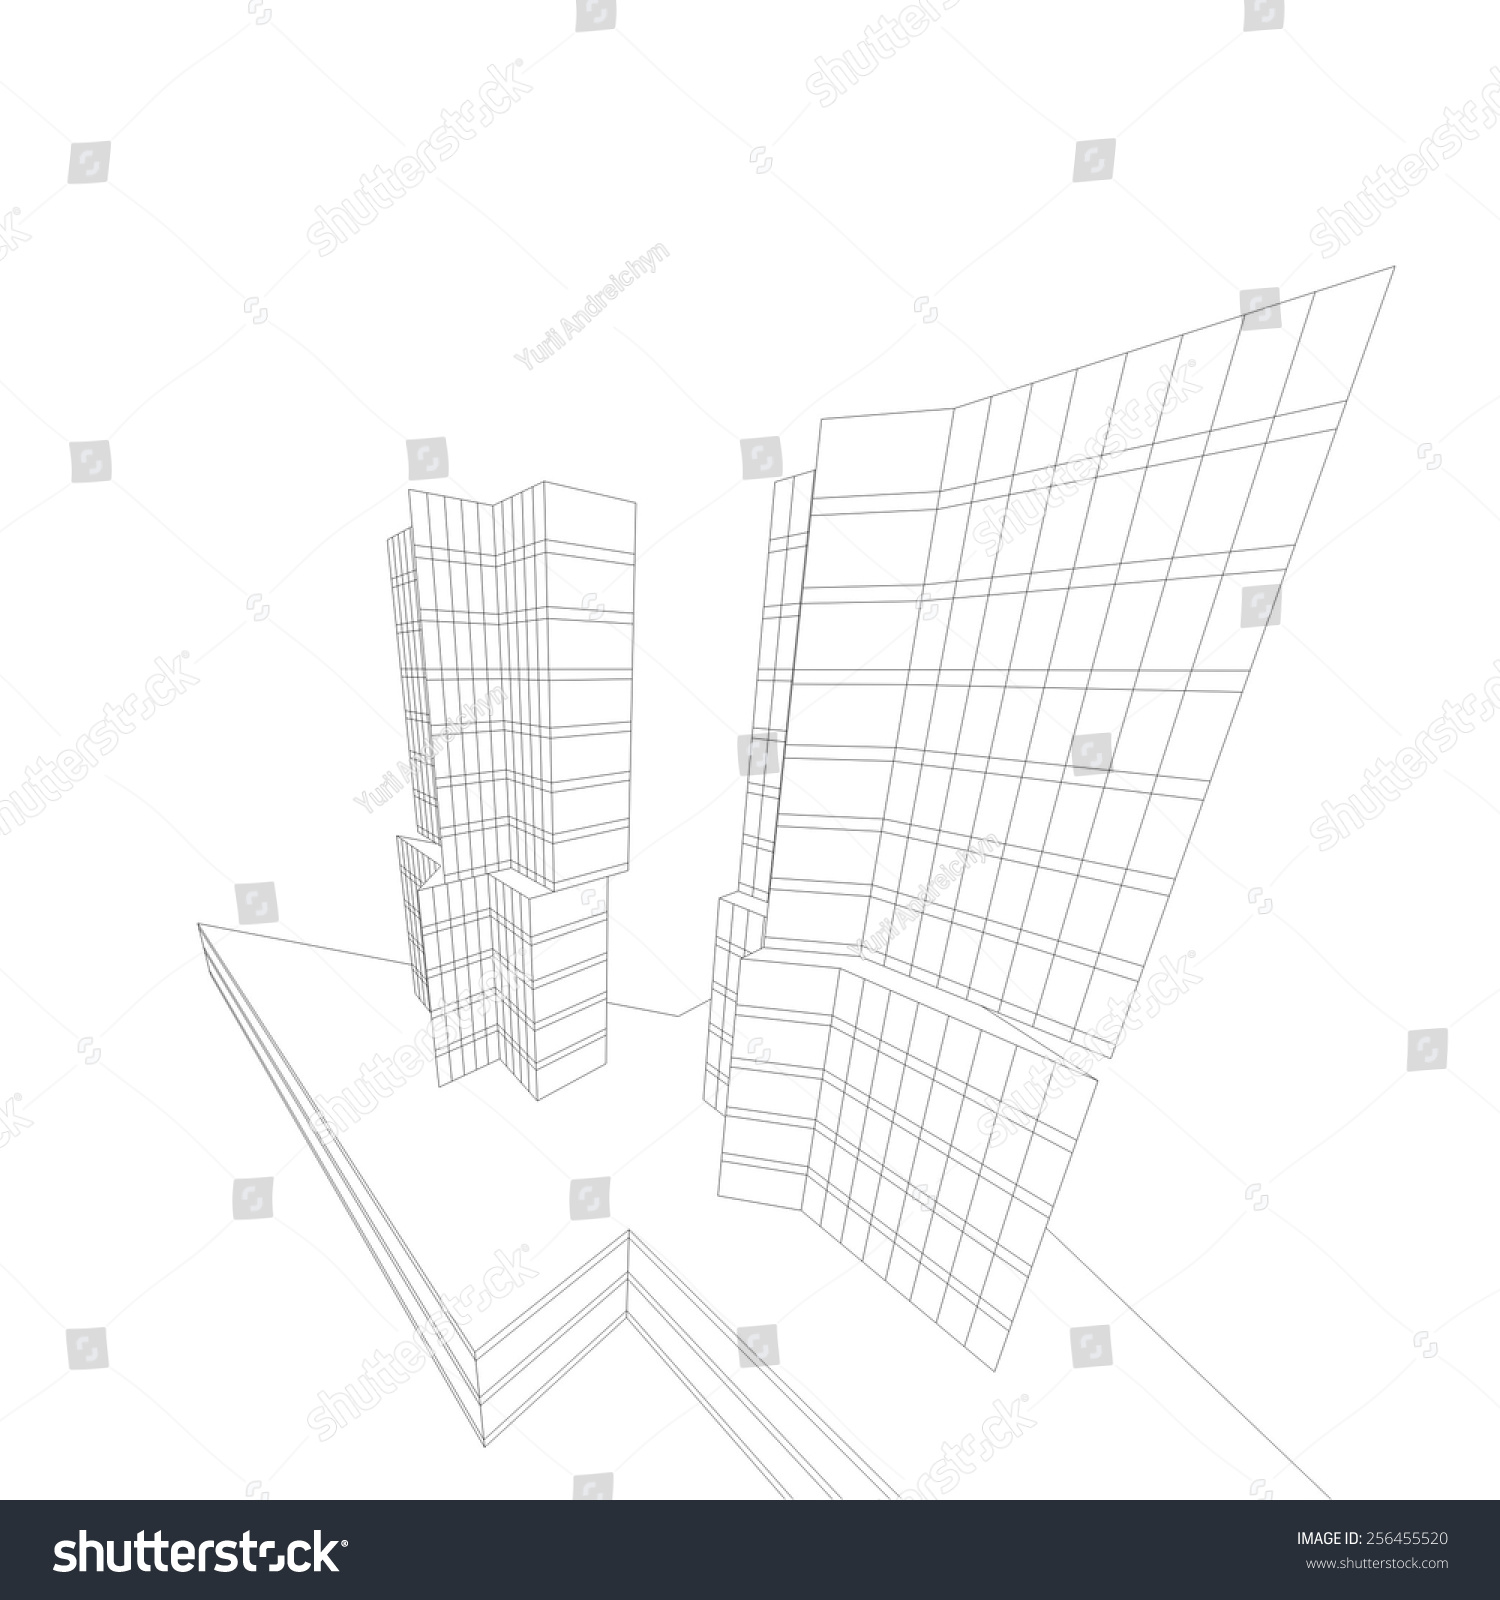 modern architectural sketches.  Architectural Modern Architectural Drawing Architecture Background Skyscraper Building Intended Architectural Sketches